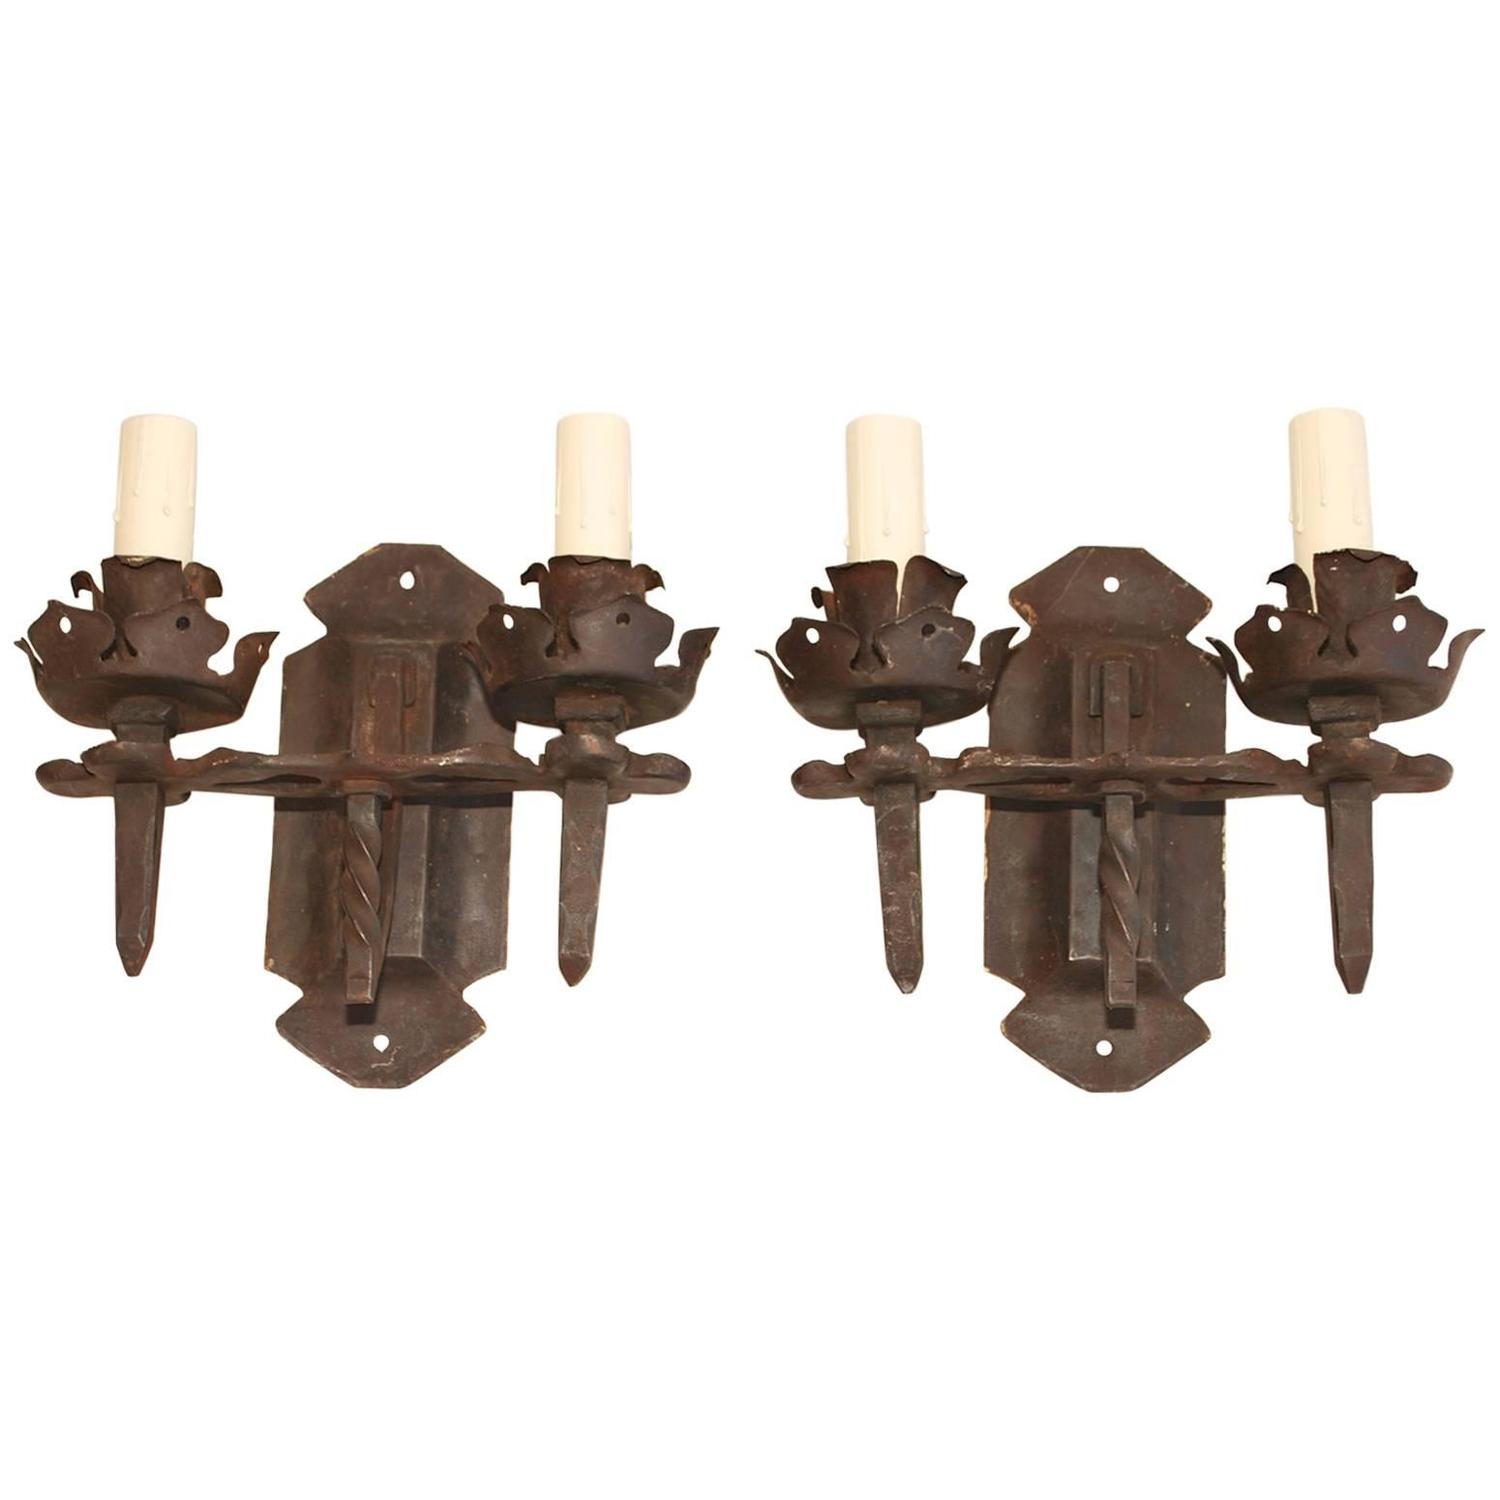 Handmade Metal Wall Sconces : Beautiful 1920 Rustic Handmade Wrought Iron Sconces For Sale at 1stdibs